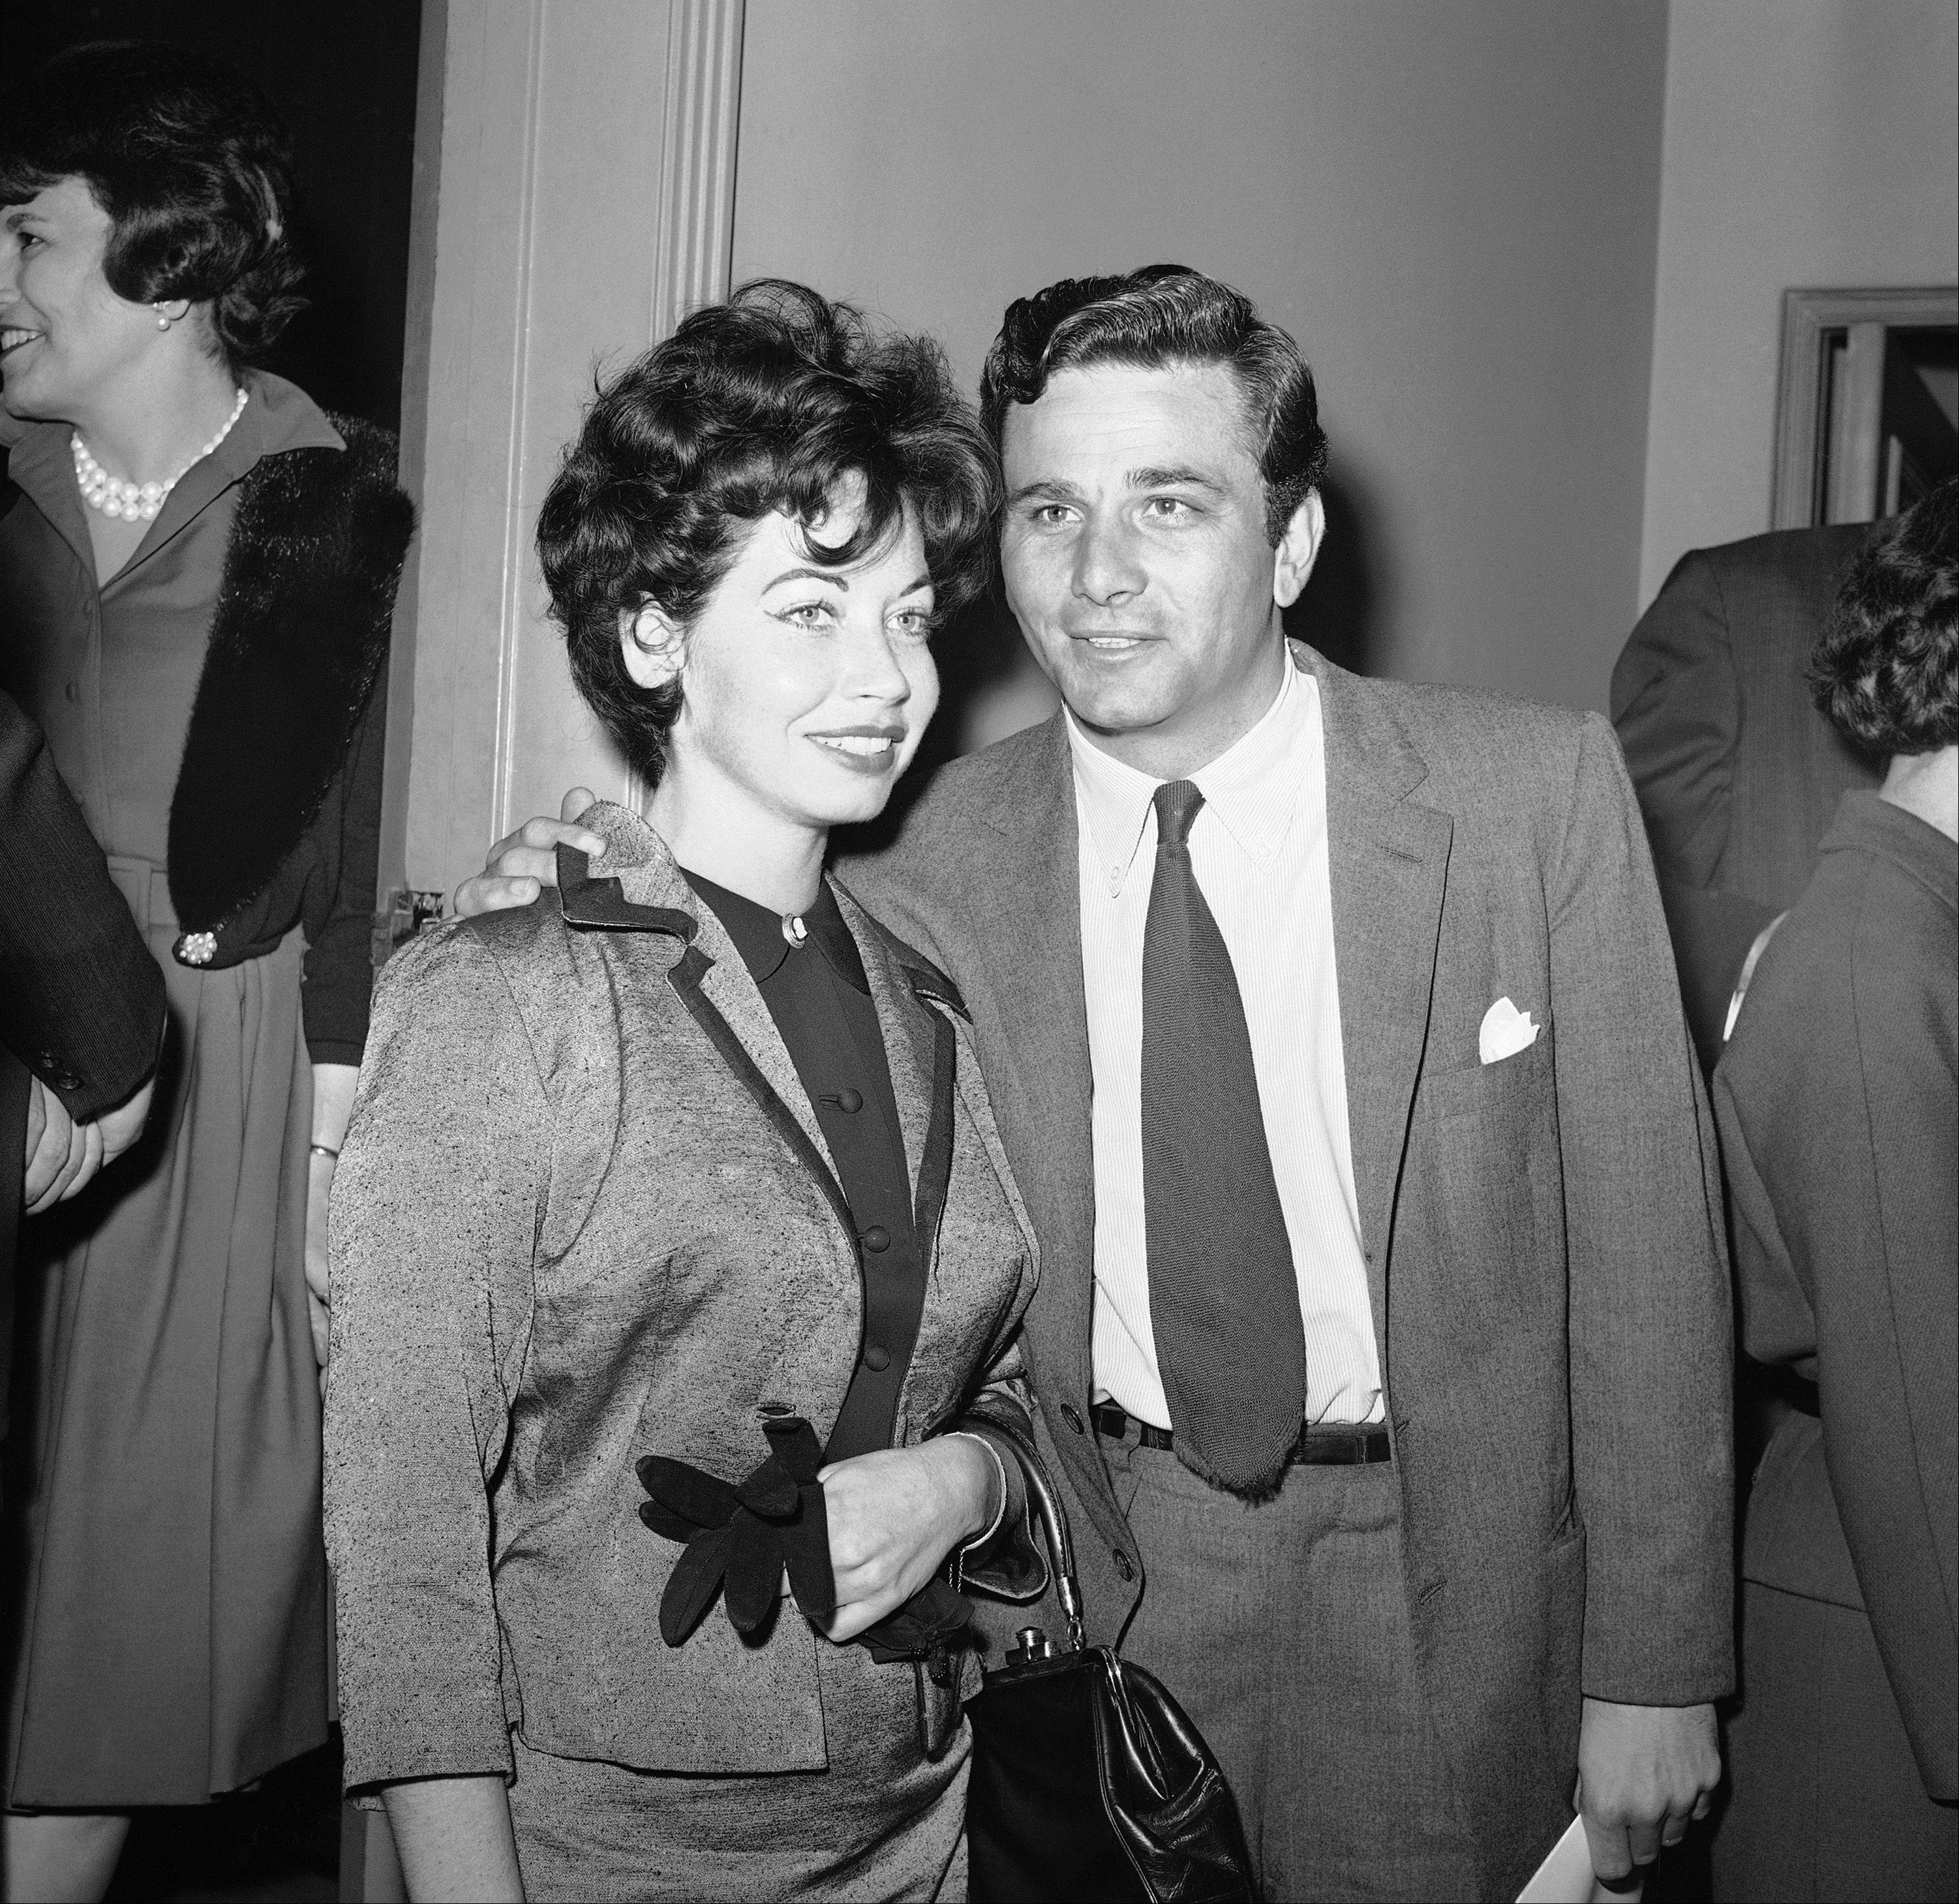 "Actor Peter Falk and wife arrive for the invitational preview of the film ""Reprieve"" at Hollywood's Academy Theater on March 26, 1962 in Los Angeles."